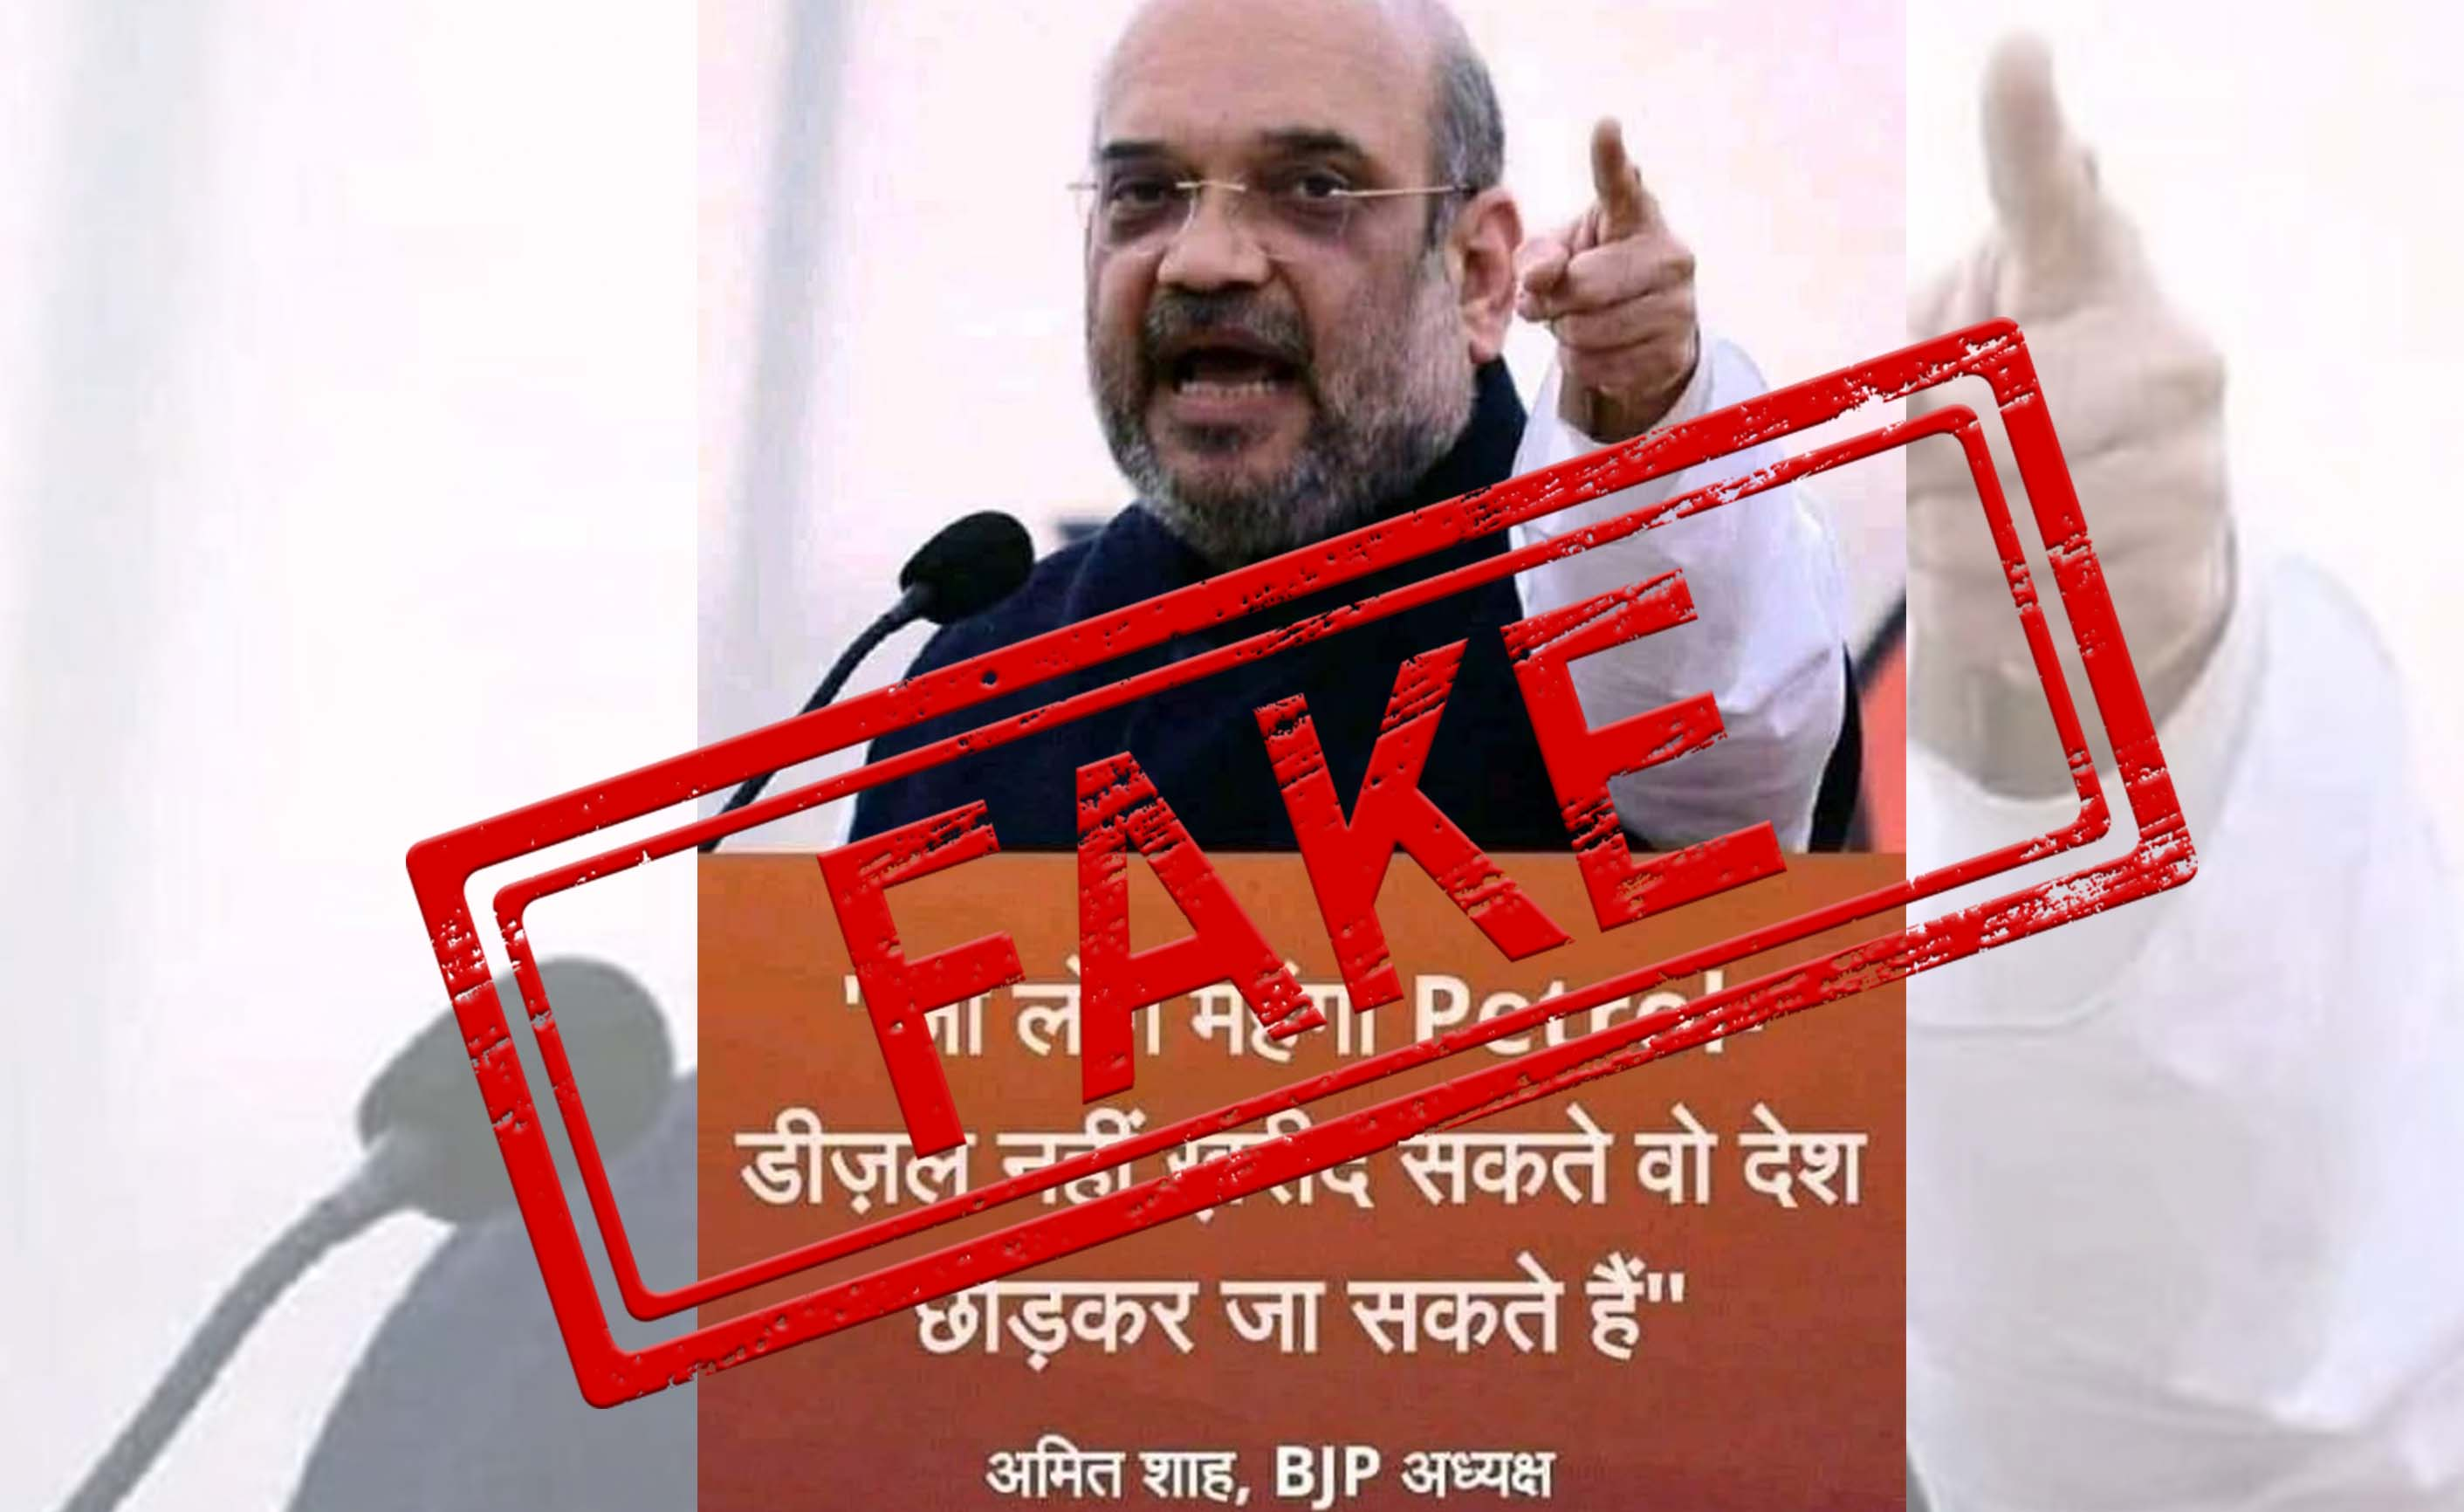 Amit Shah, BJP, Home Minister, Petrol, Diesel, NewsMobile, Mobile, News, India, Fact Checker, Fact Check, Fake, news